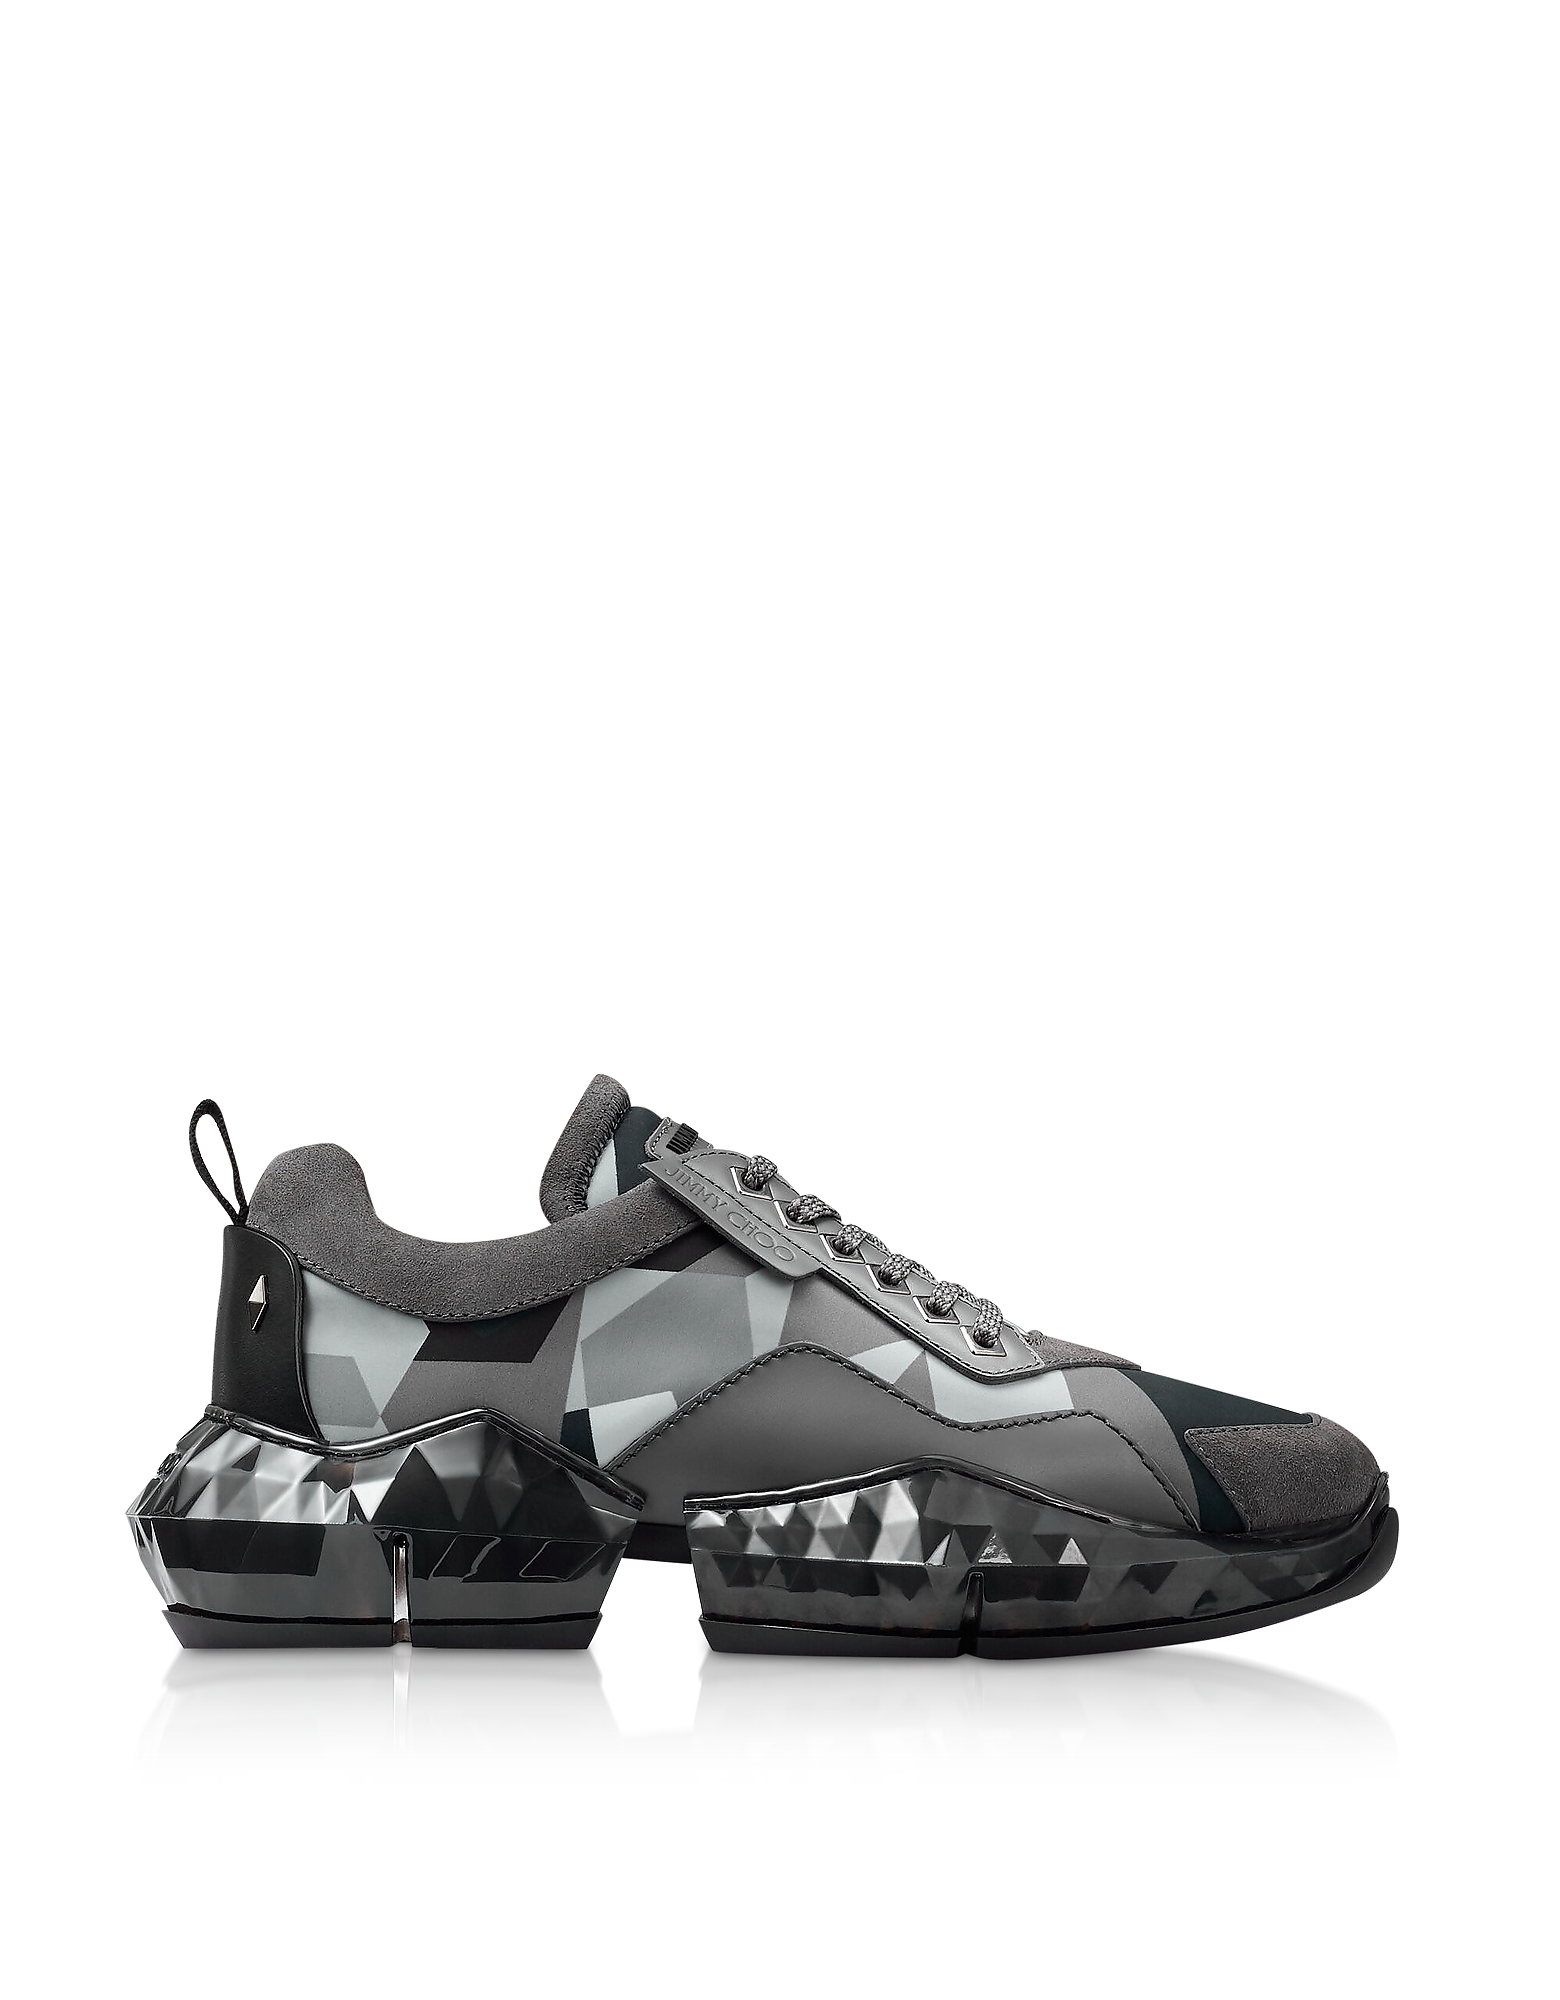 Jimmy Choo Designer Shoes, Anthracite Diamond Sneakers w/ Camo Print Nylon